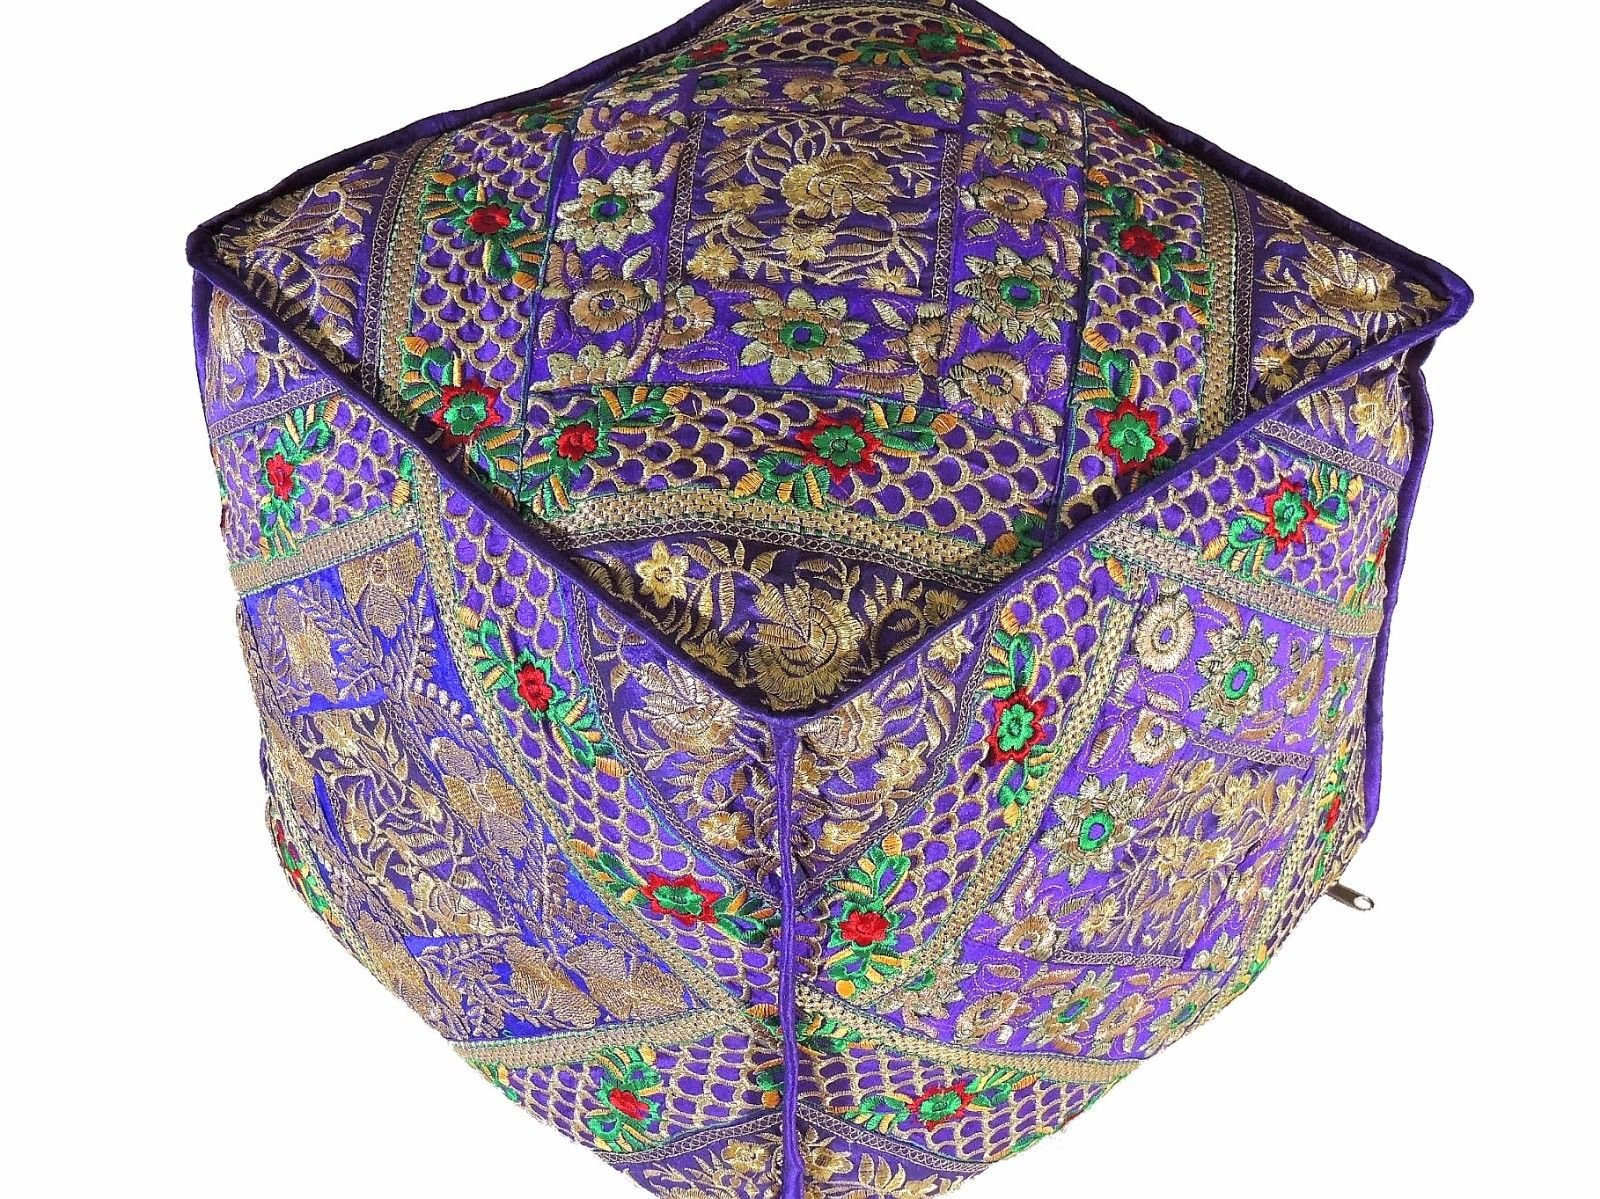 NovaHaat Purple Gold Decorative Embroidery Pouf Cover - Large Trendy Living Room Ottoman with Fine Parsi, Kashmiri and Zari Hand Embroidery from India - 18in L x 18in W x 18in H